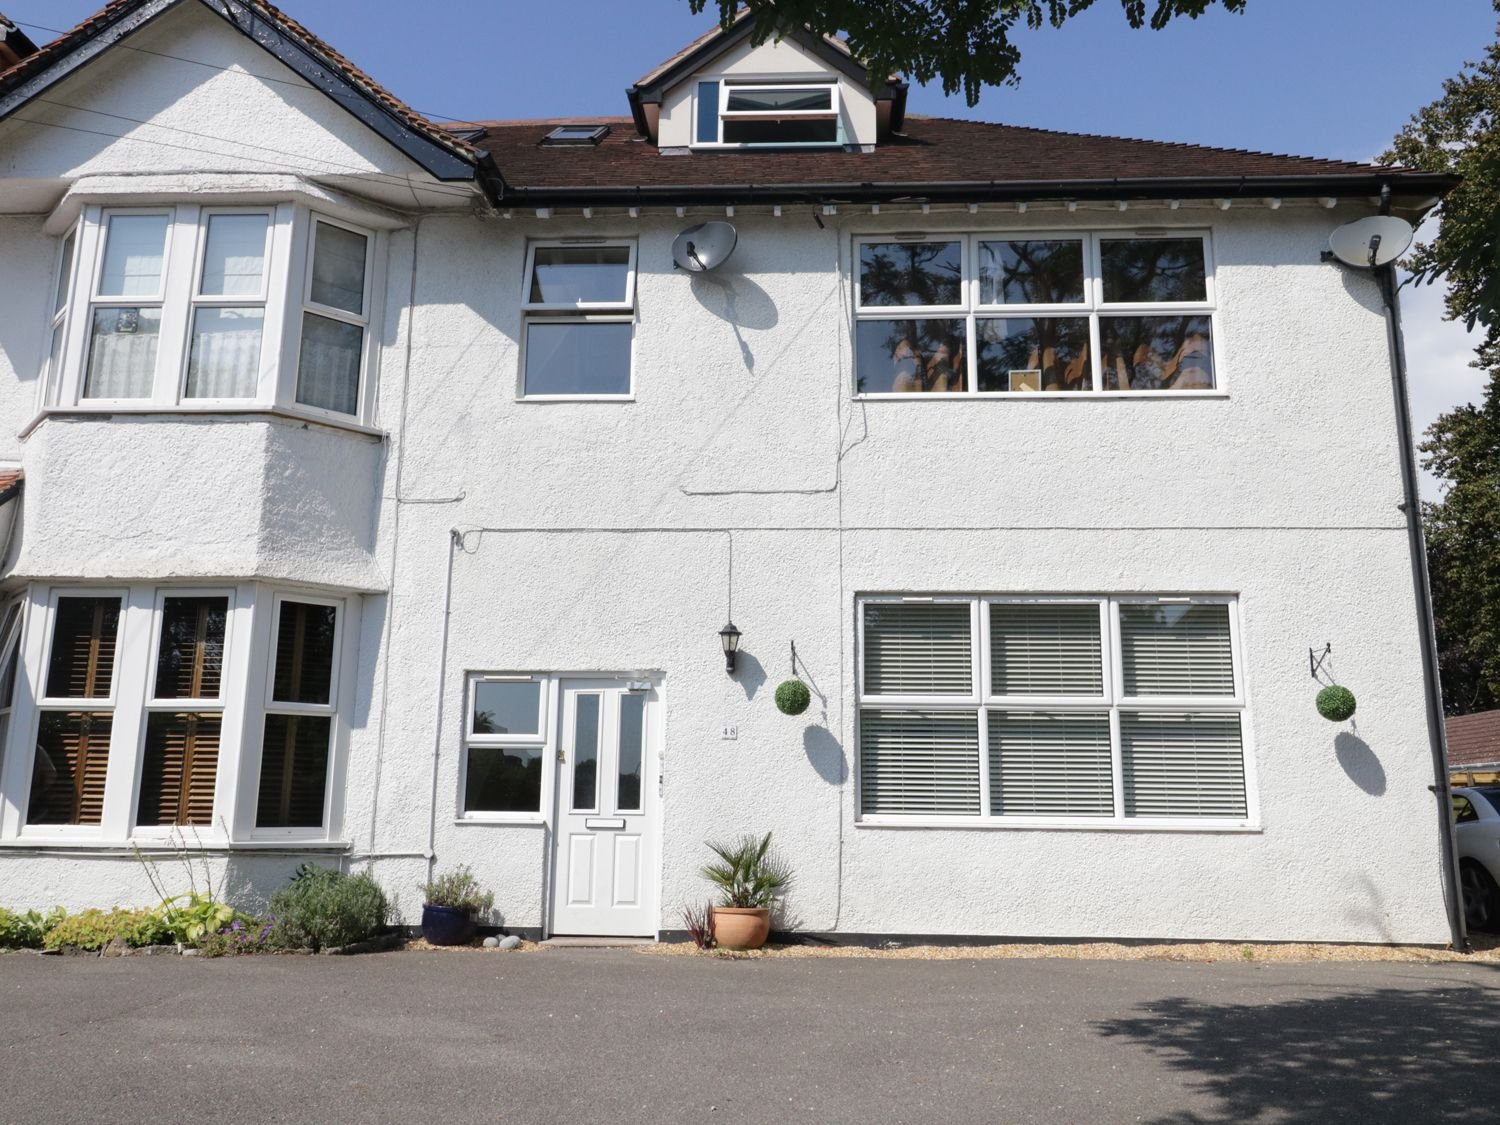 Flat 6, 48 Kings Avenue - Dorset - 989147 - photo 1